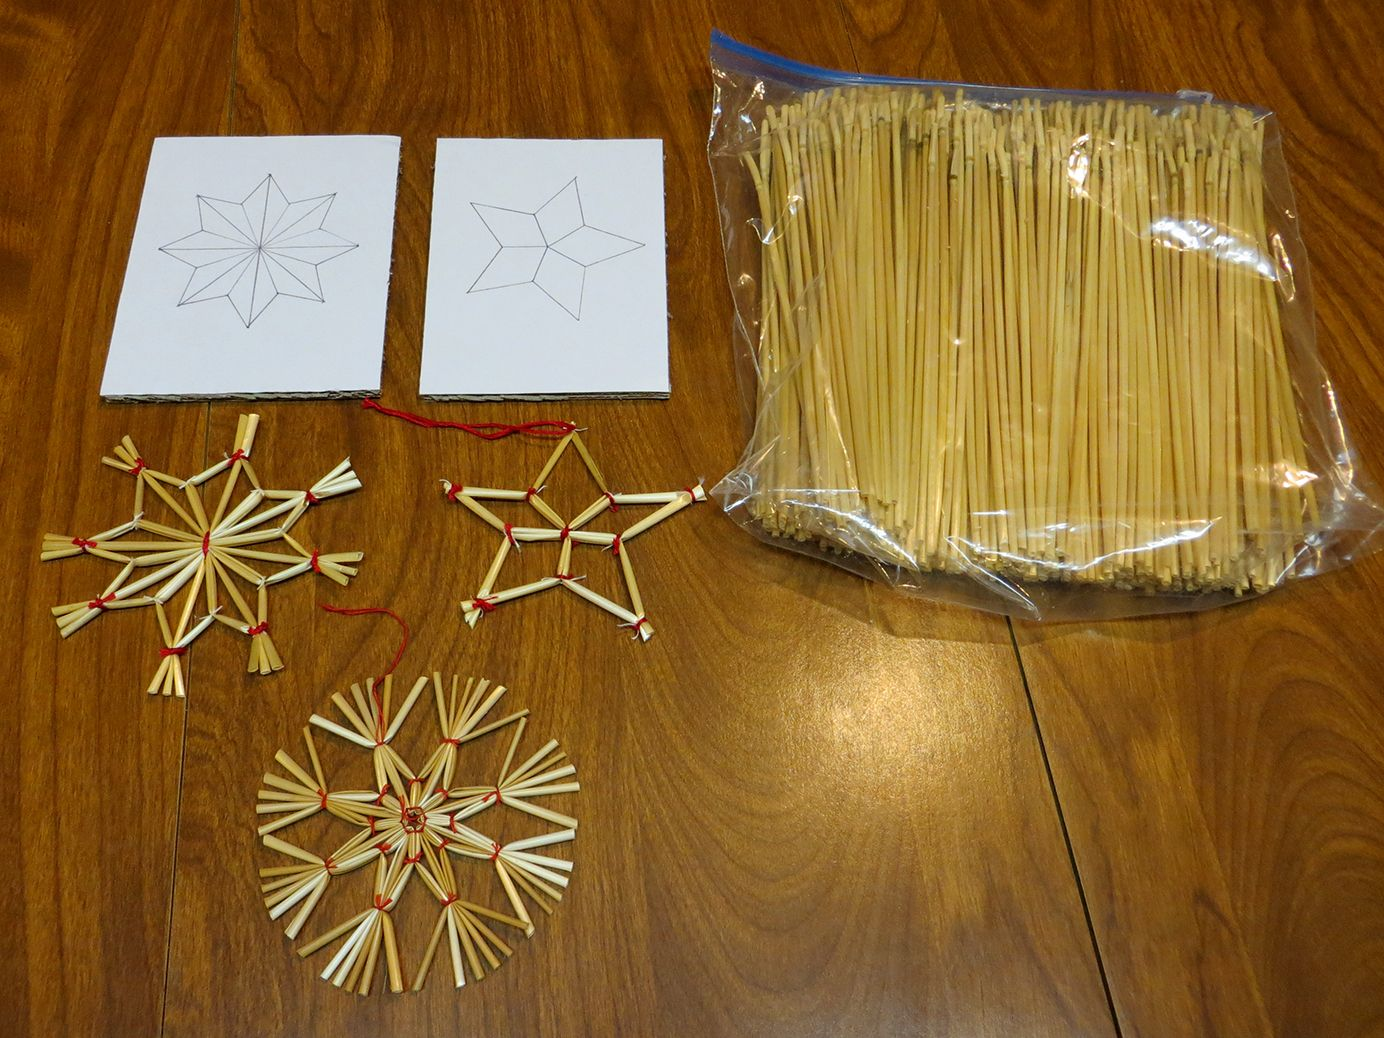 Wheat Weaving Supplies And Sample Ornaments We Can Make Christmas Crafts Decorations Handmade Christmas Decorations Walnut Shell Crafts